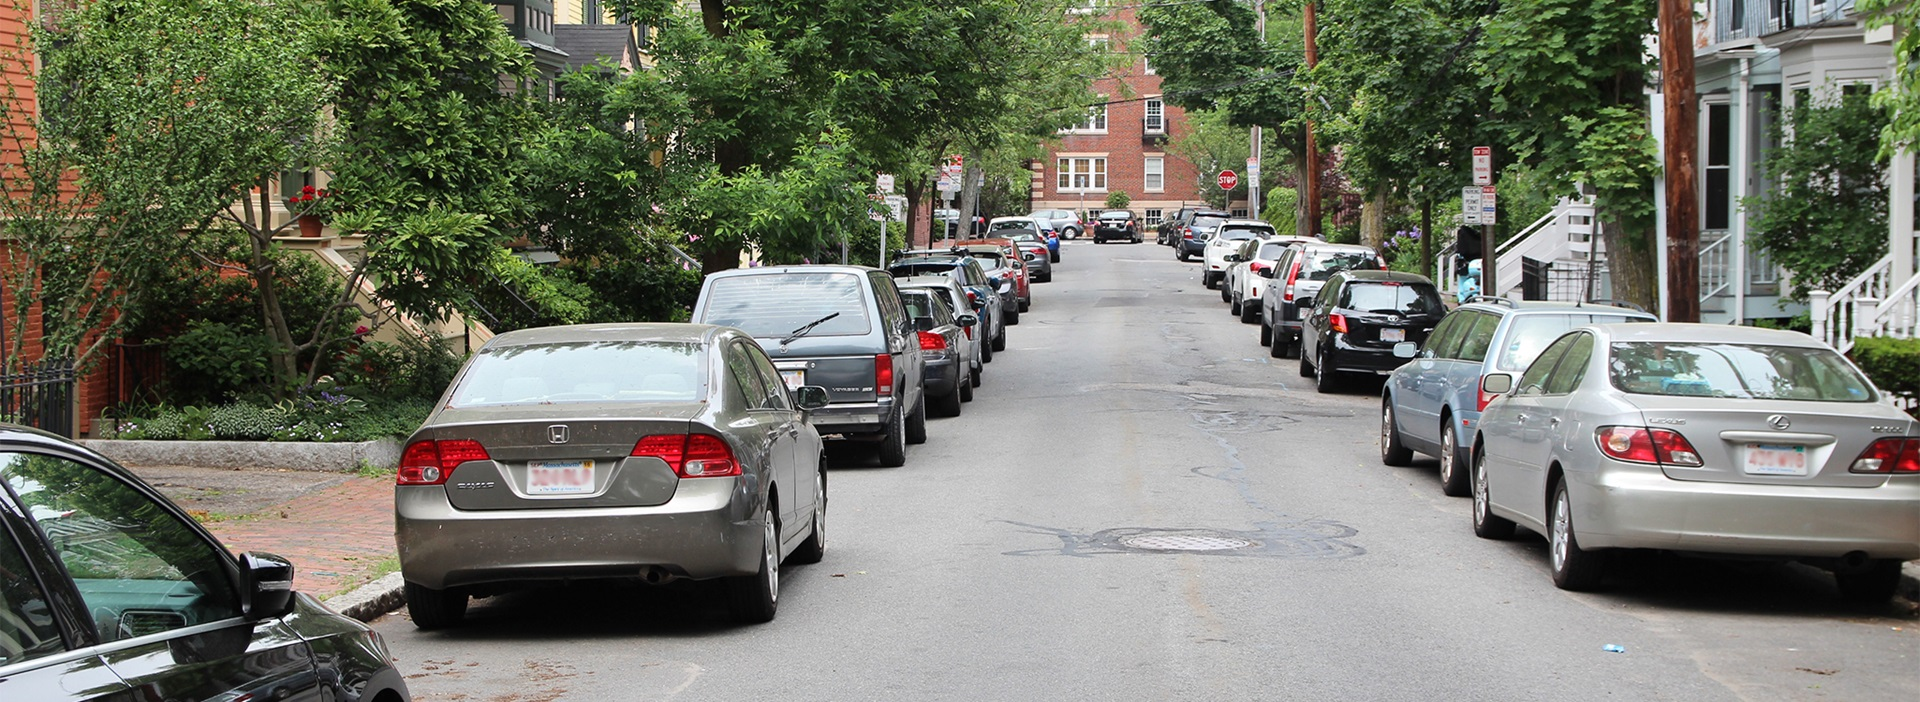 Cars parked on residential Street